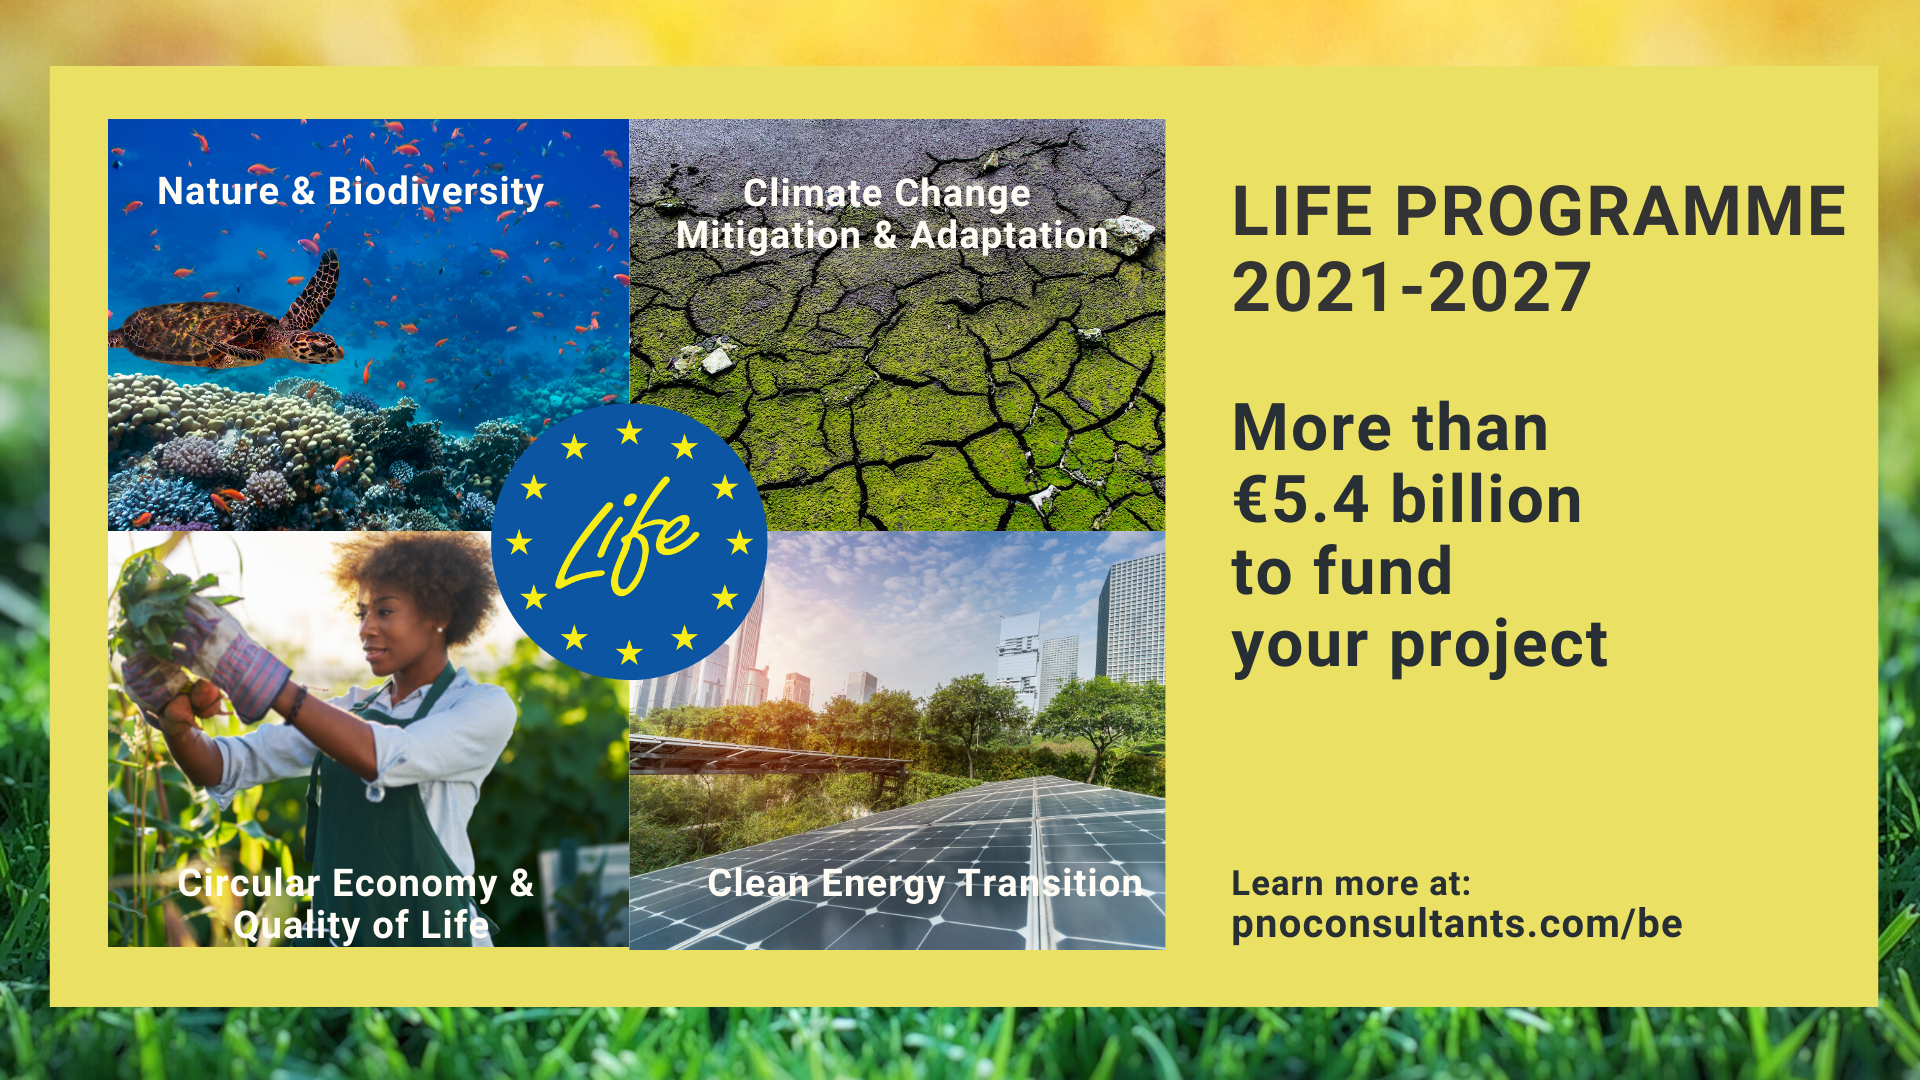 LIFE 2021-2027: More opportunities for the green economy